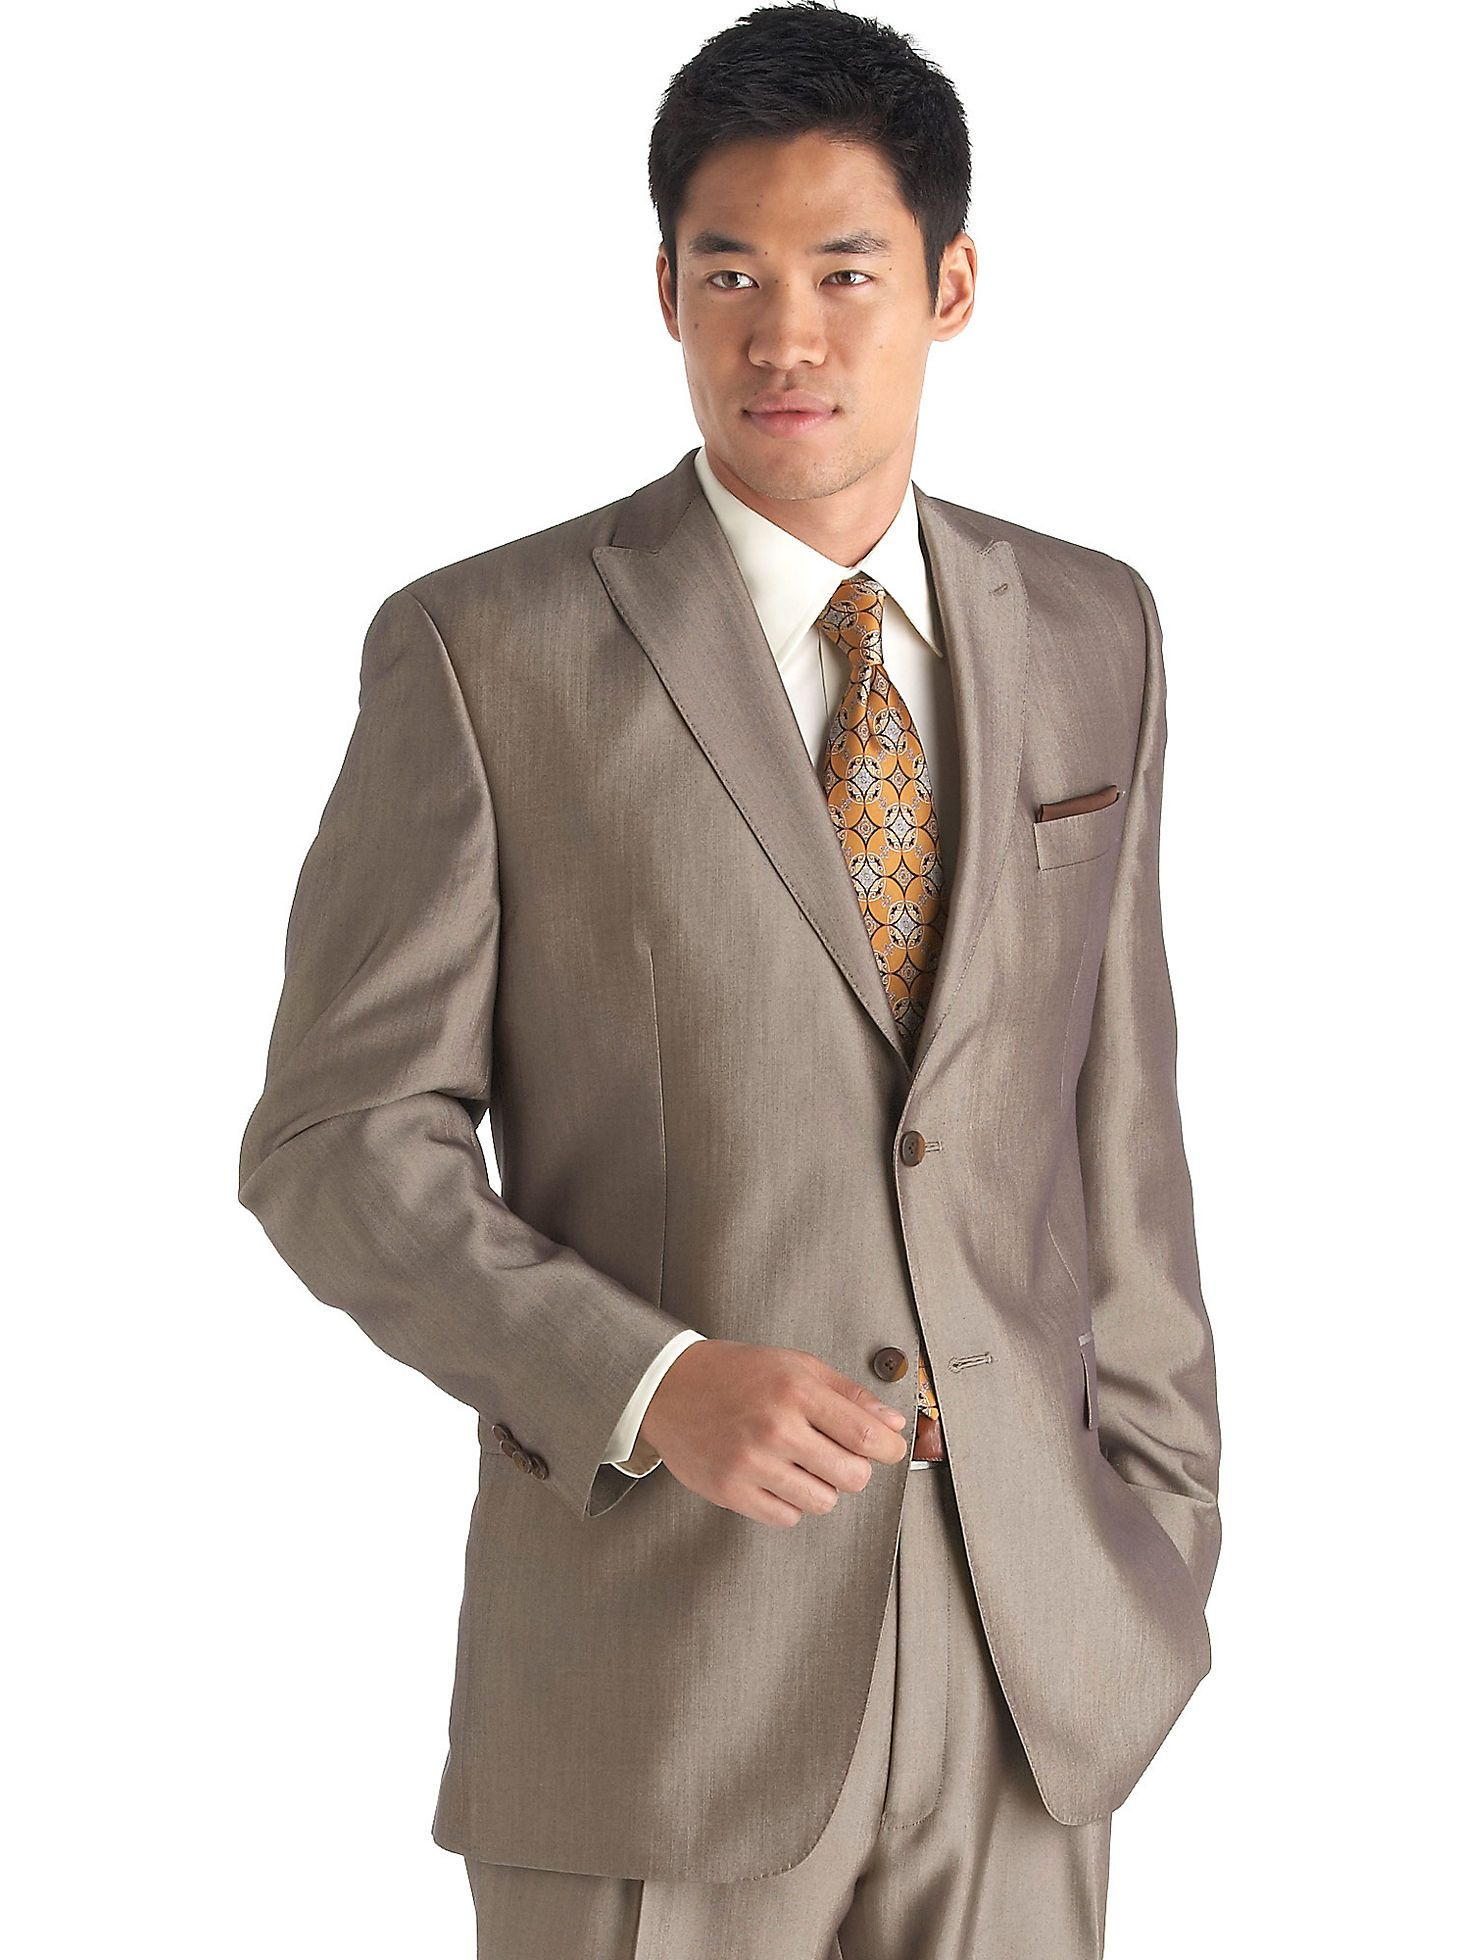 Sean John Taupe Suit Men S Wearhouse Shop Mens Clothing Mens